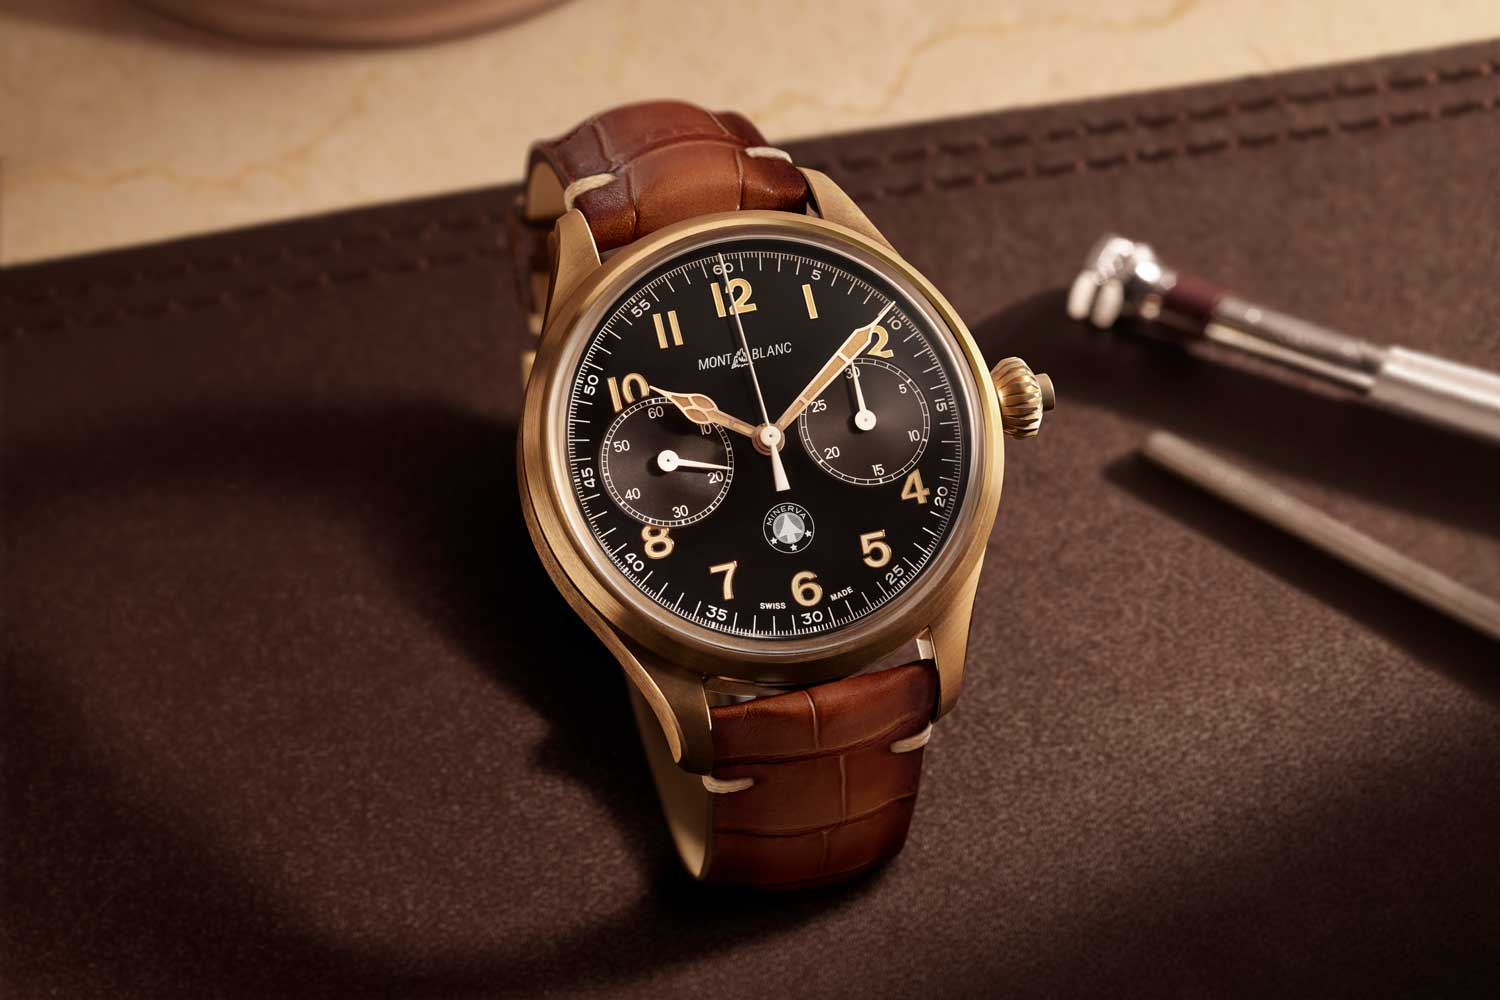 The Montblanc 1858 Monopusher Chronograph Origins Limited Edition 100 is rendered in bronze with brushed surfaces and polished bevels